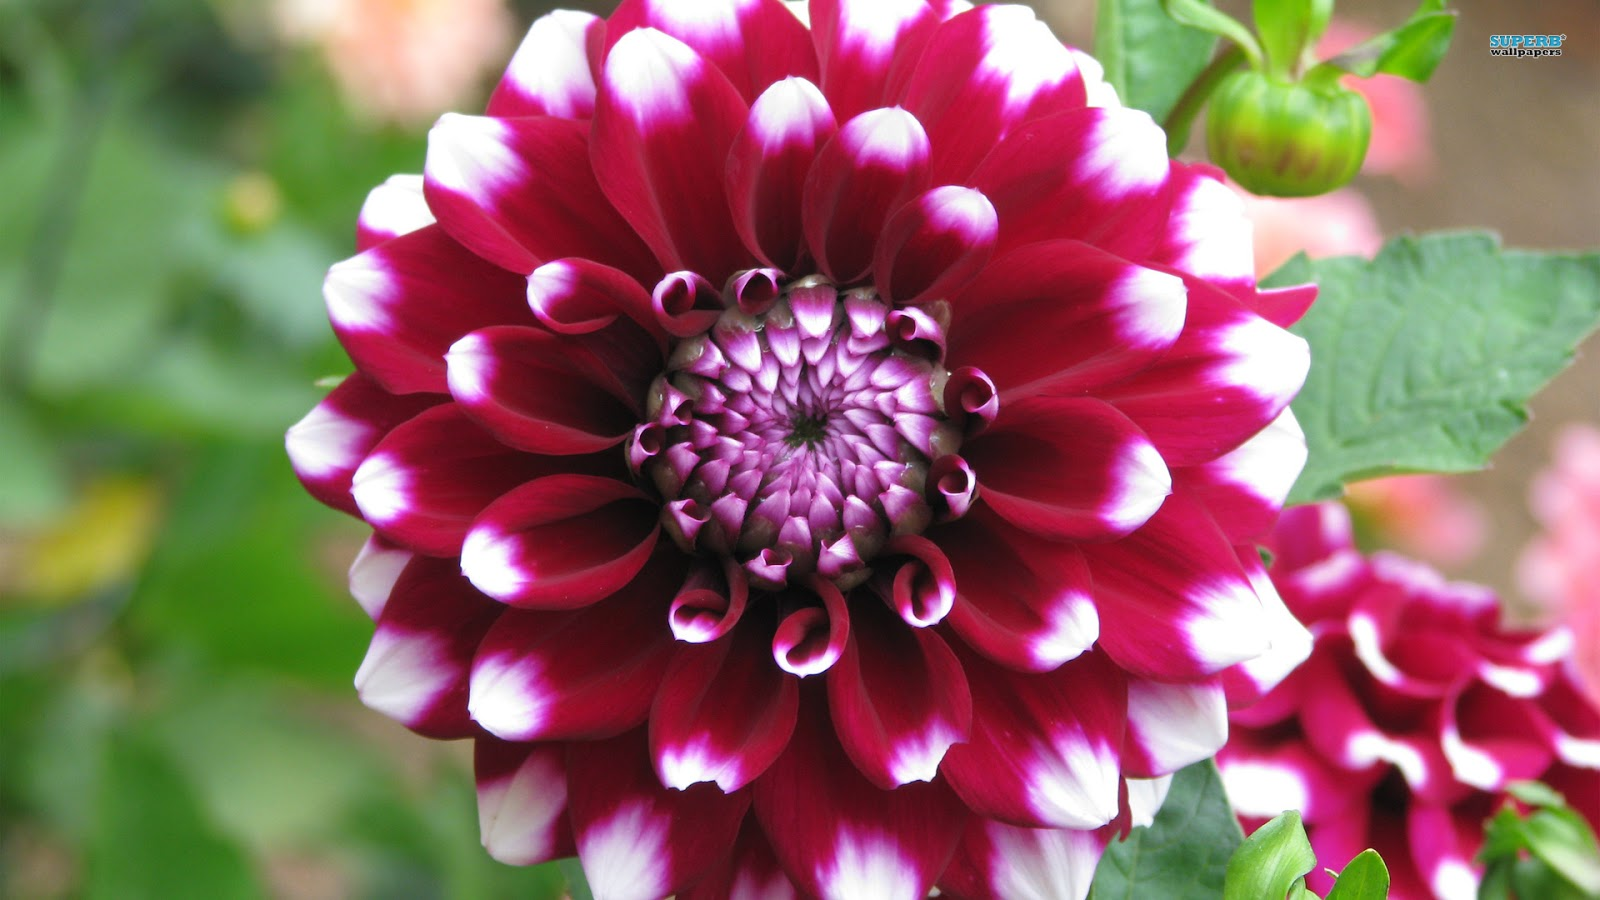 dahlia flower meaning  flower, Natural flower